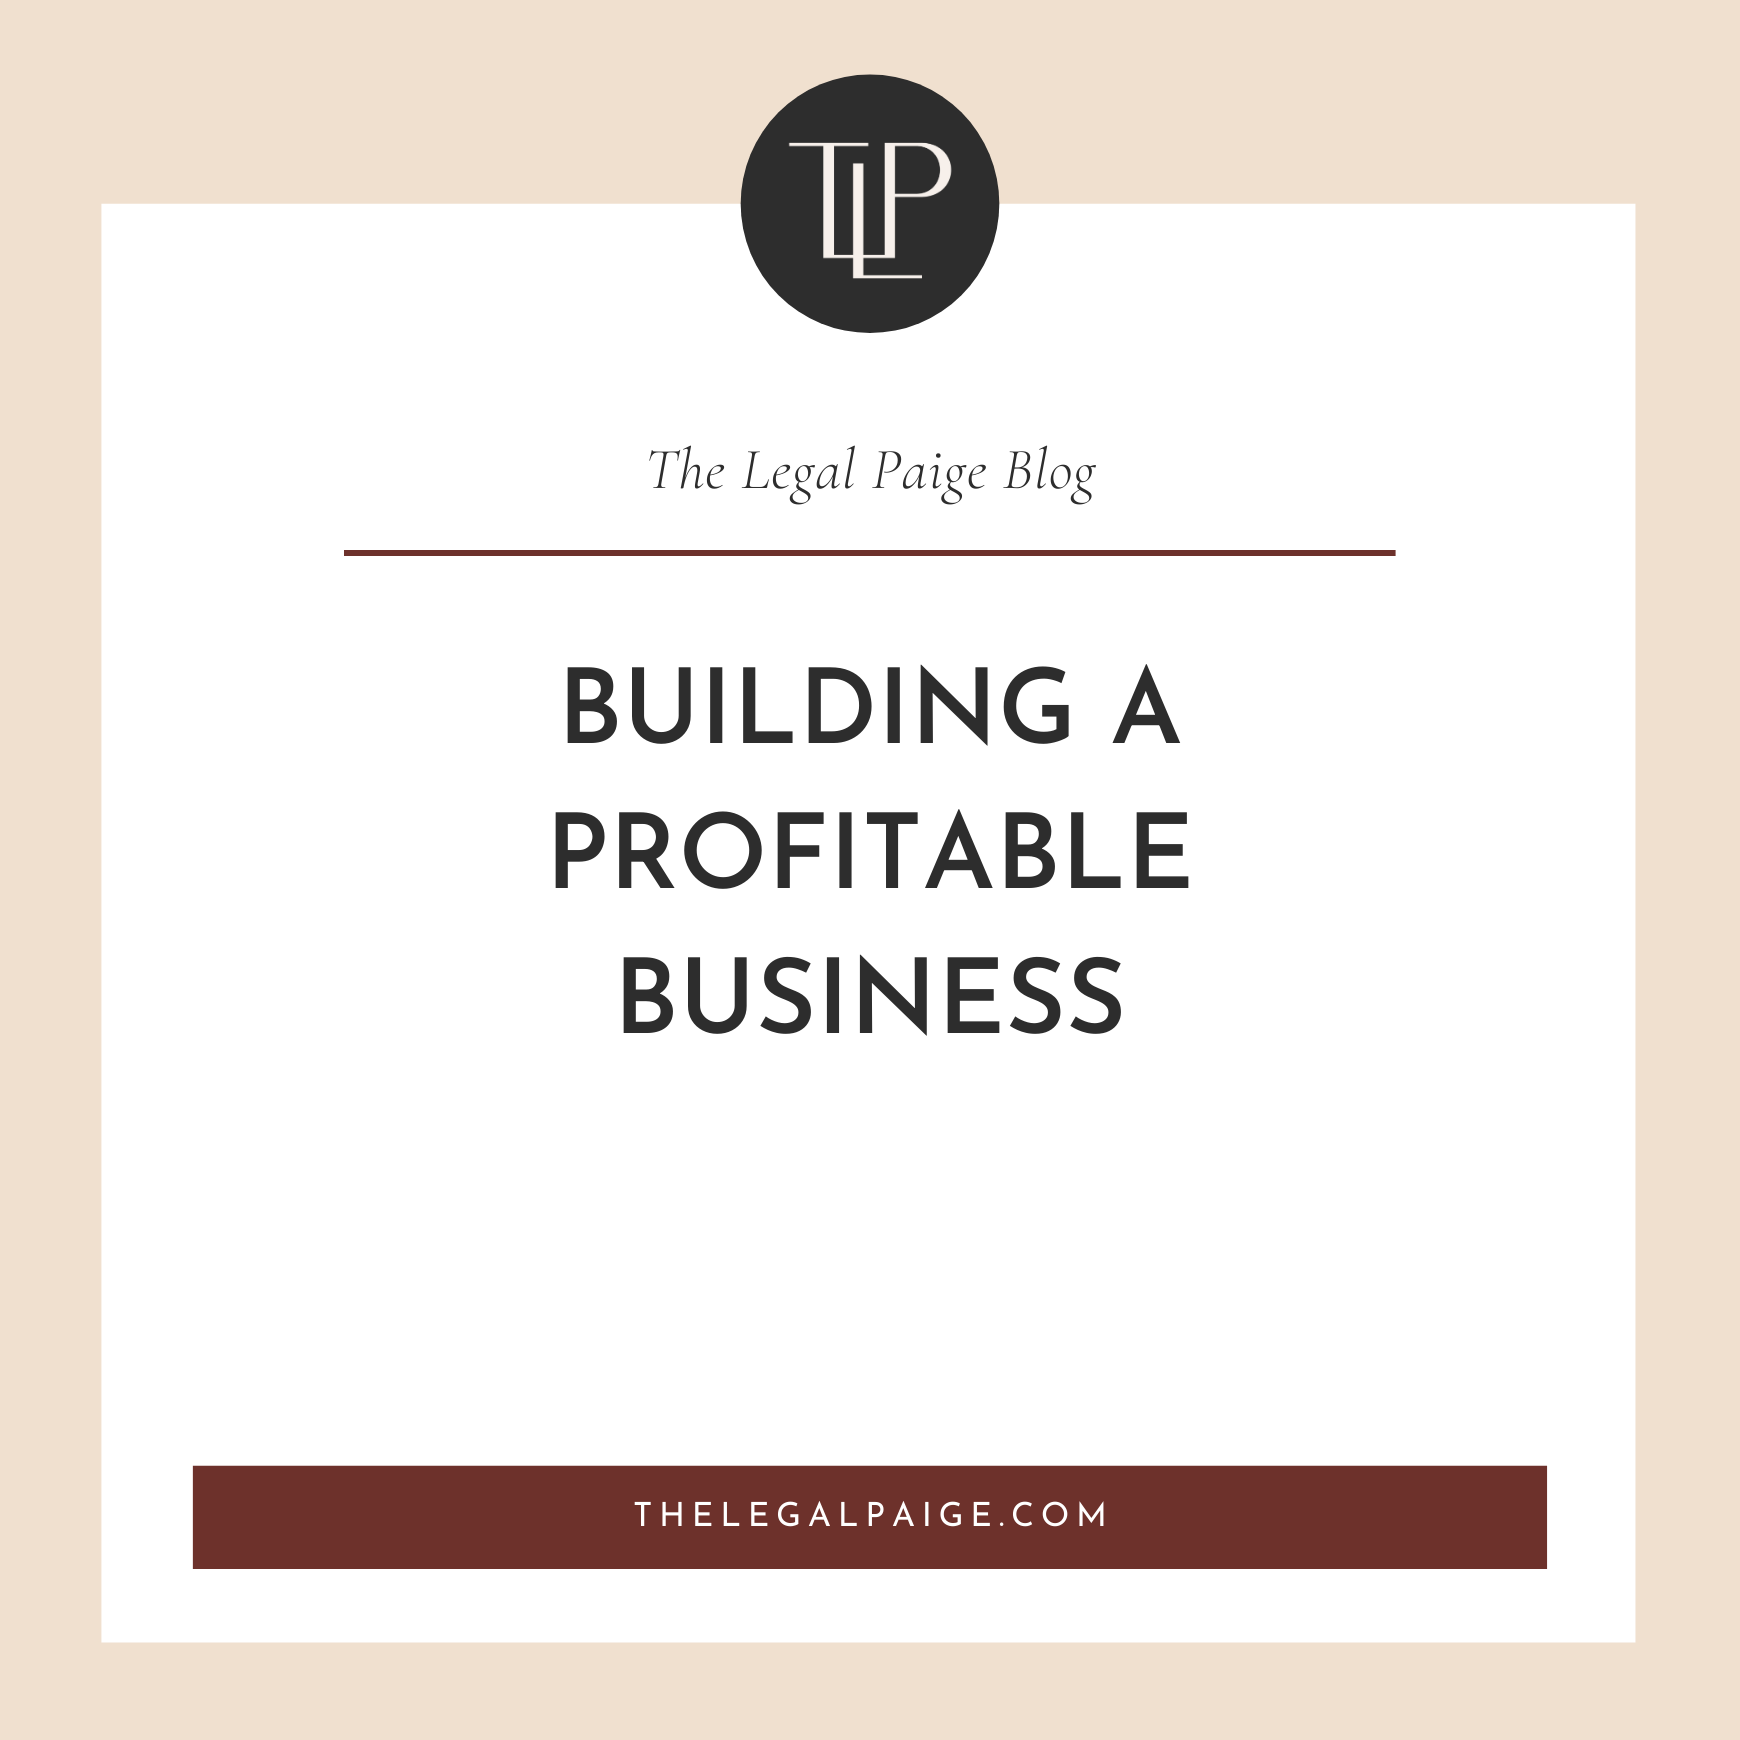 Building a Profitable Business